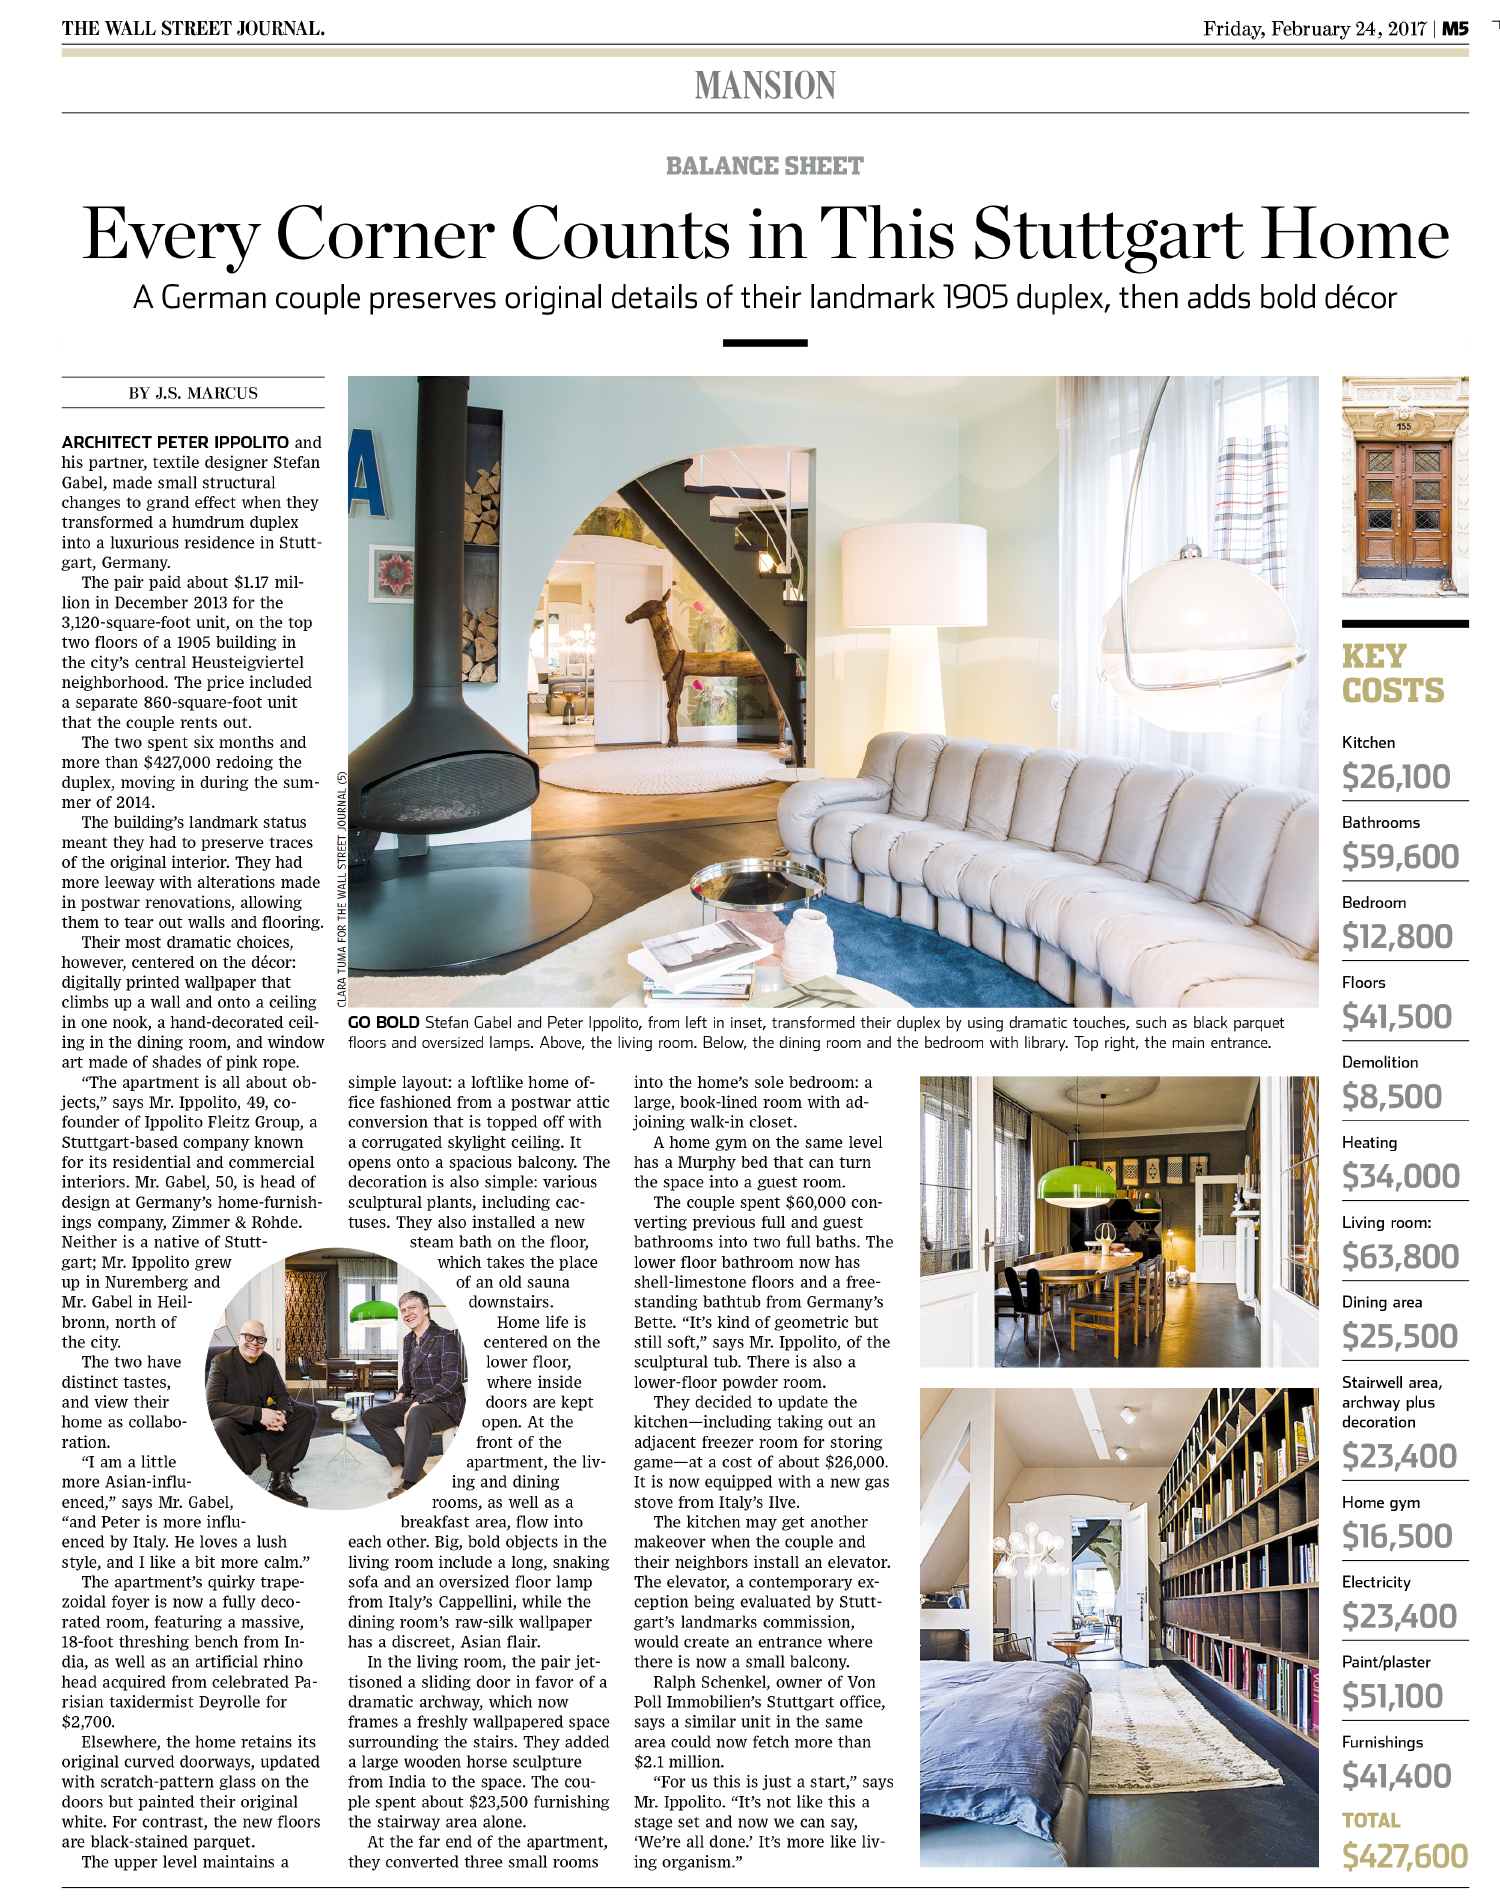 Interior shoot for The Wall Street Journal - Mansion